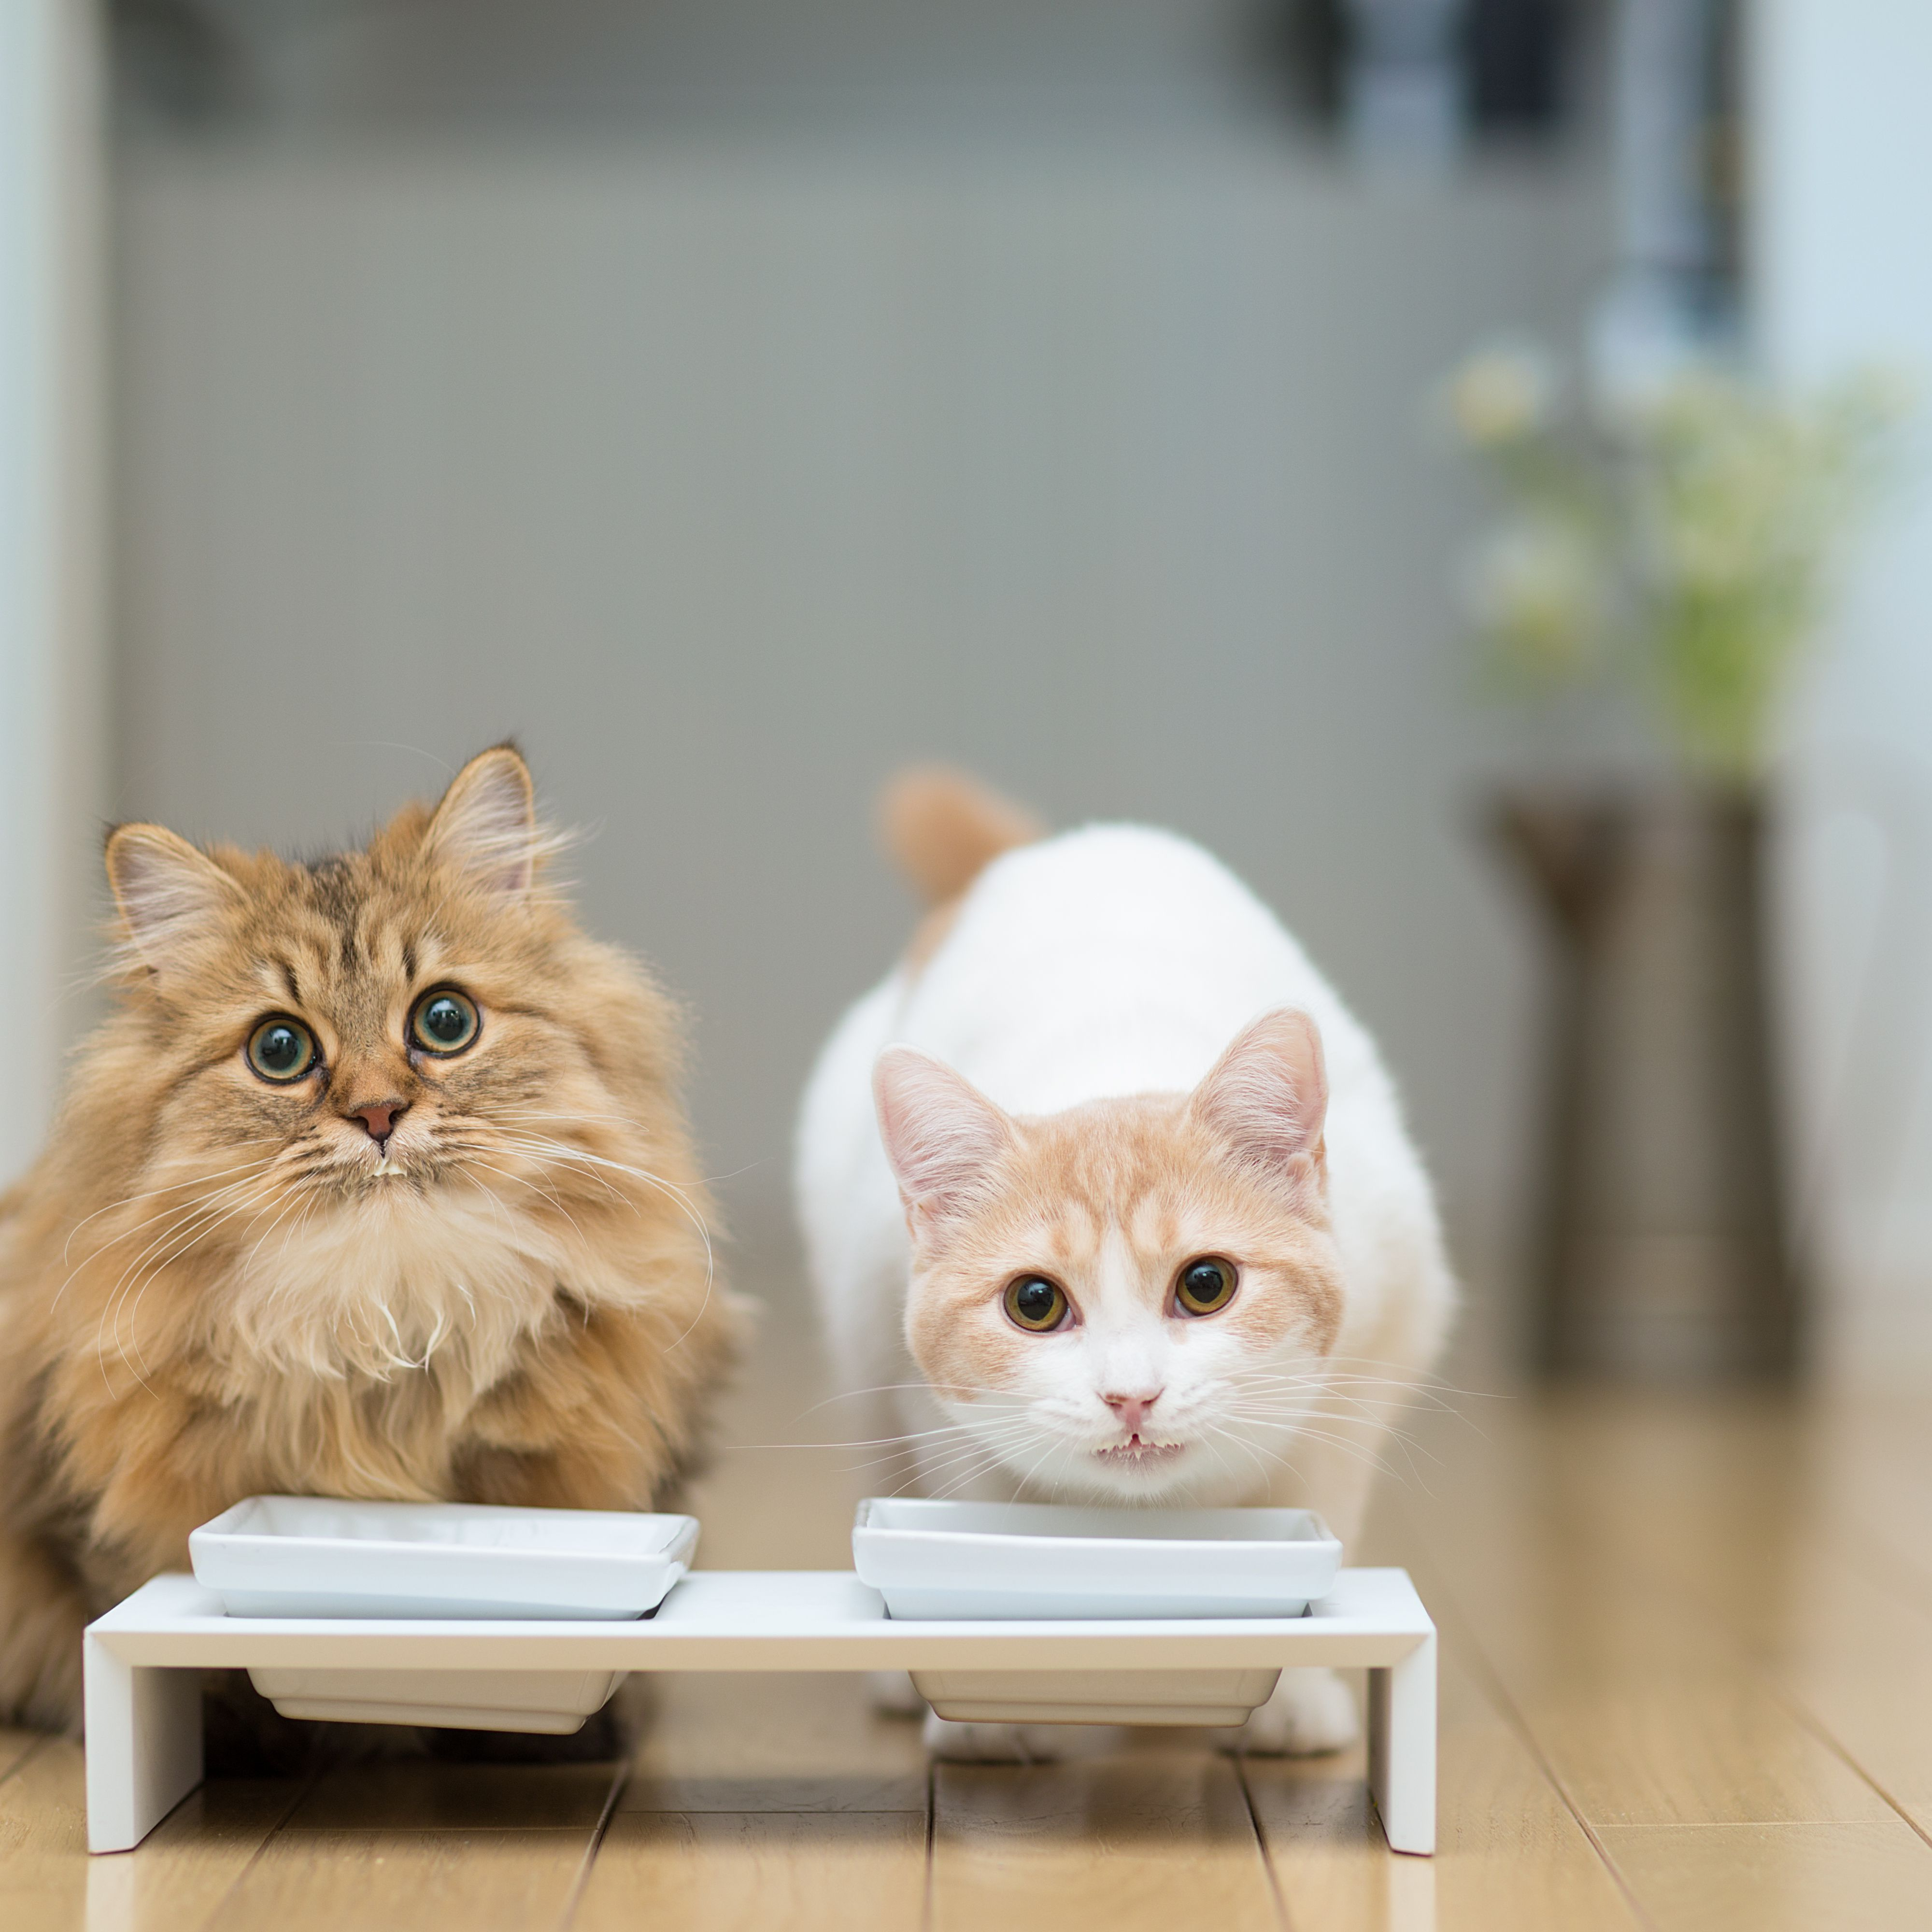 Is Feeding Milk To Your Cats Healthy For Them